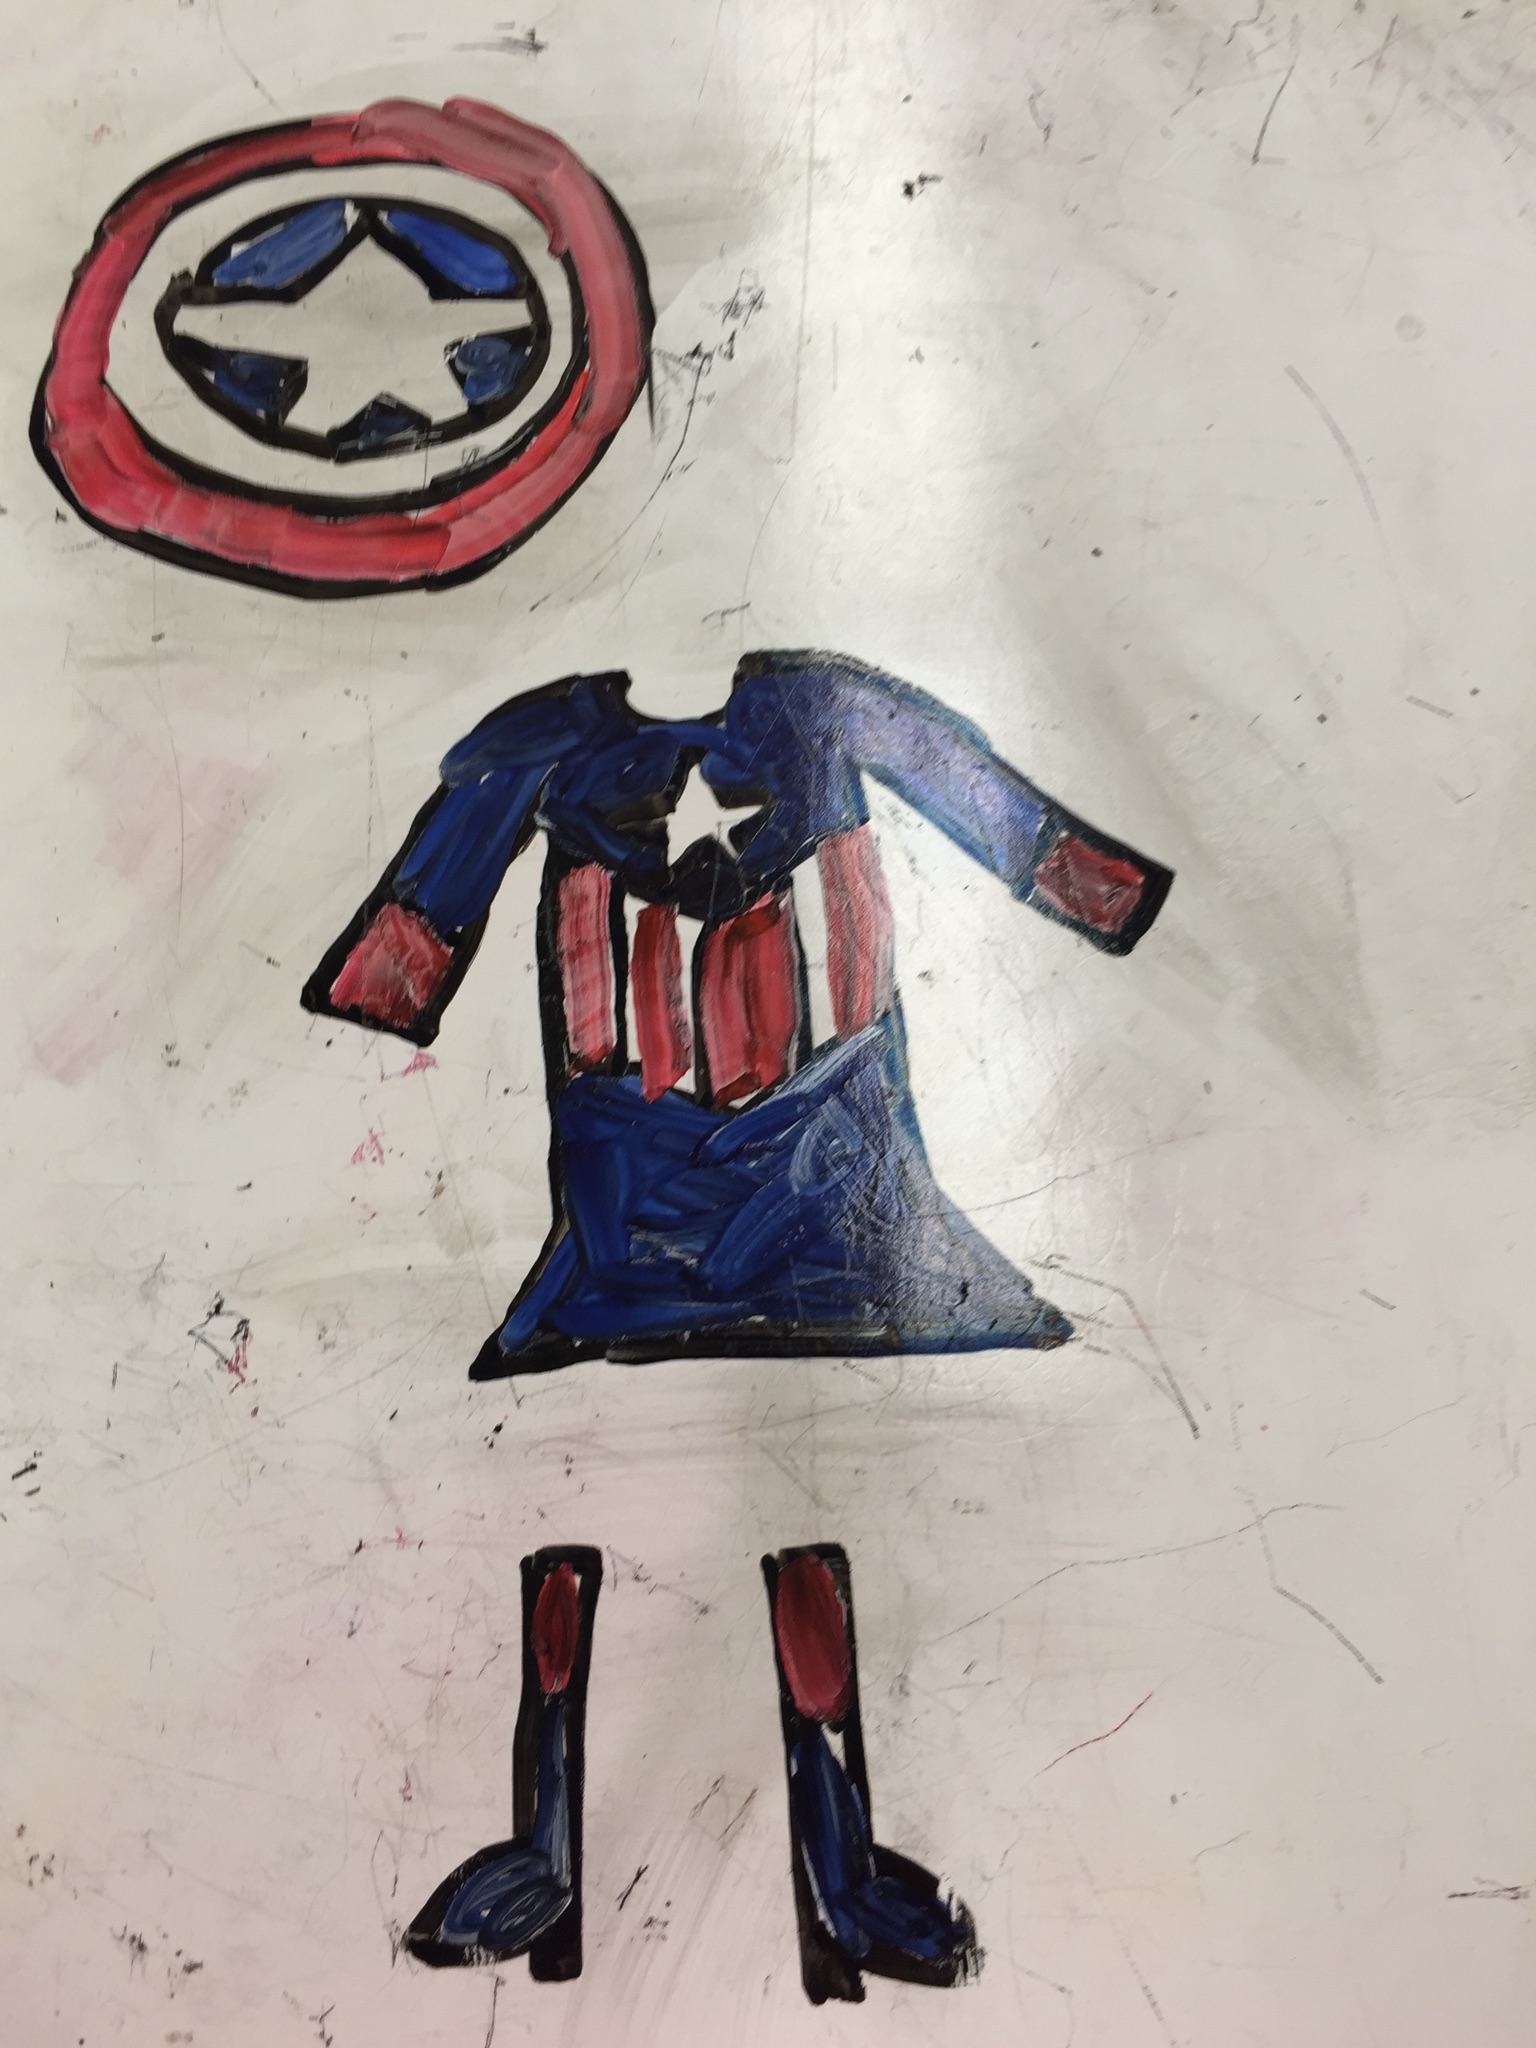 Thank you Grace for sharing your drawing! Her idea for this superhero outfit was inspired by Captain America'soutfit.